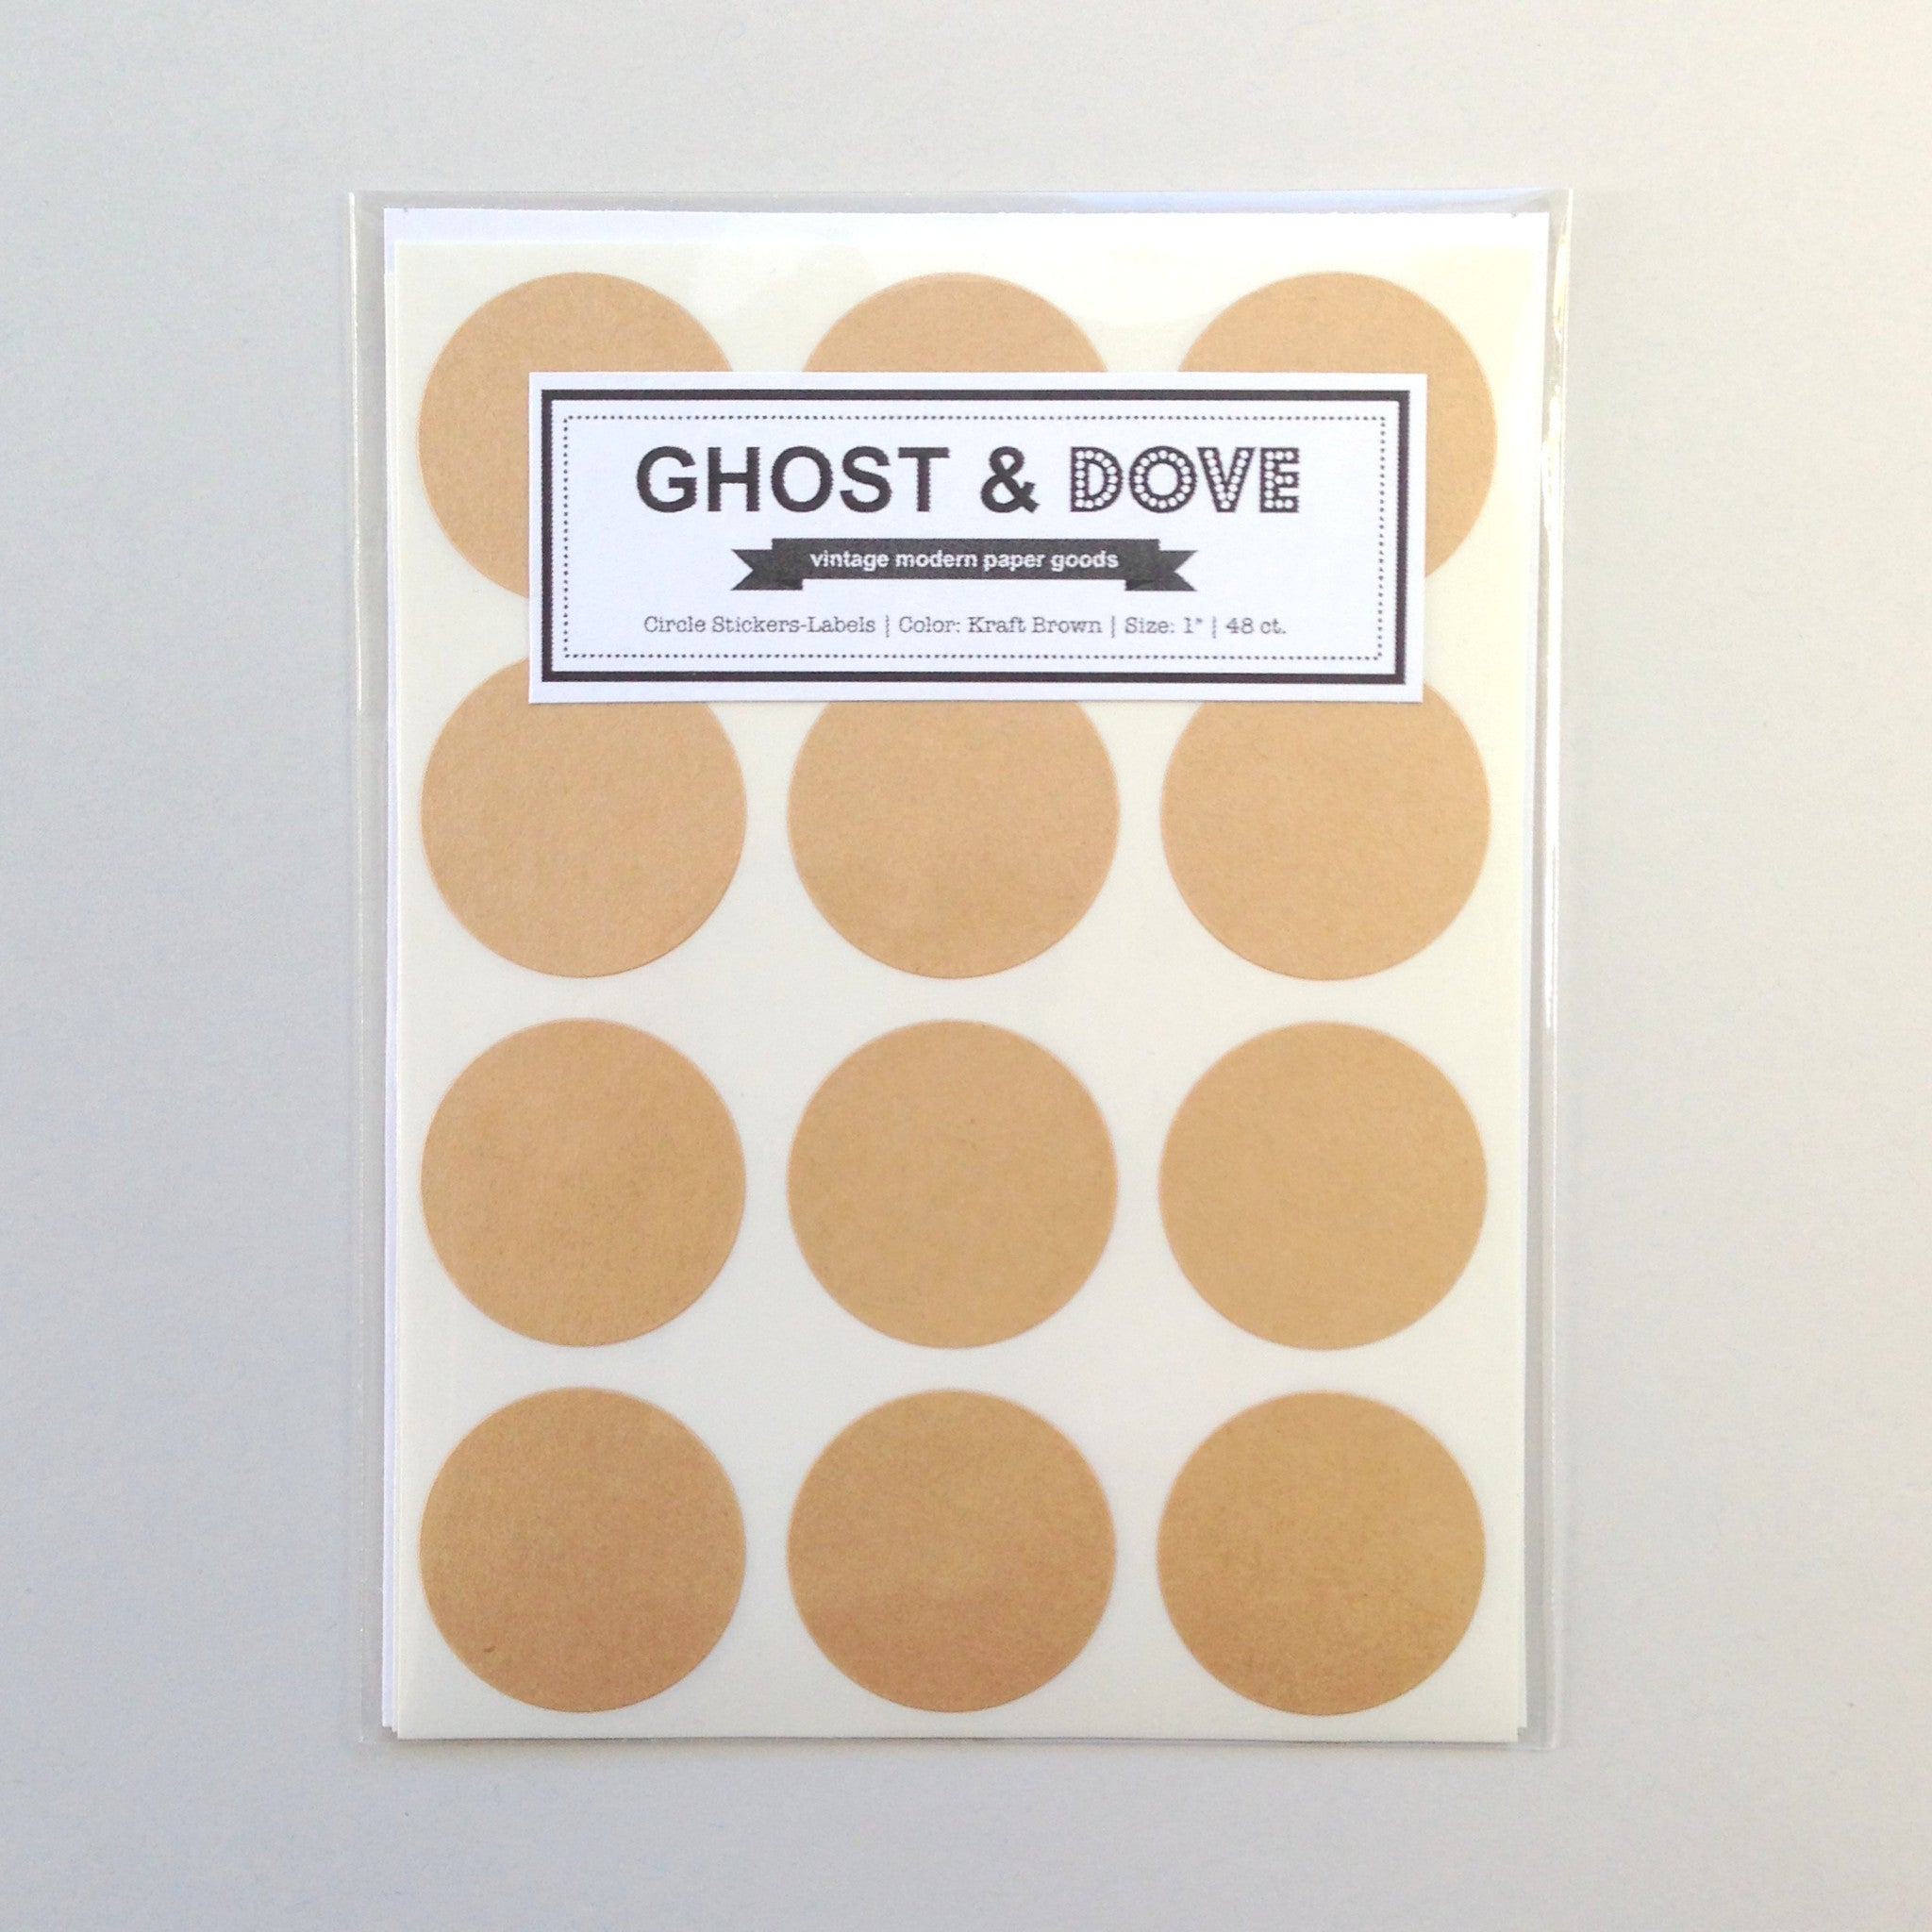 paper stickers Make colorful diy stickers with cricut printable sticker paper the print then cut feature gives you endless color possibilities, using your home printer and cricut.